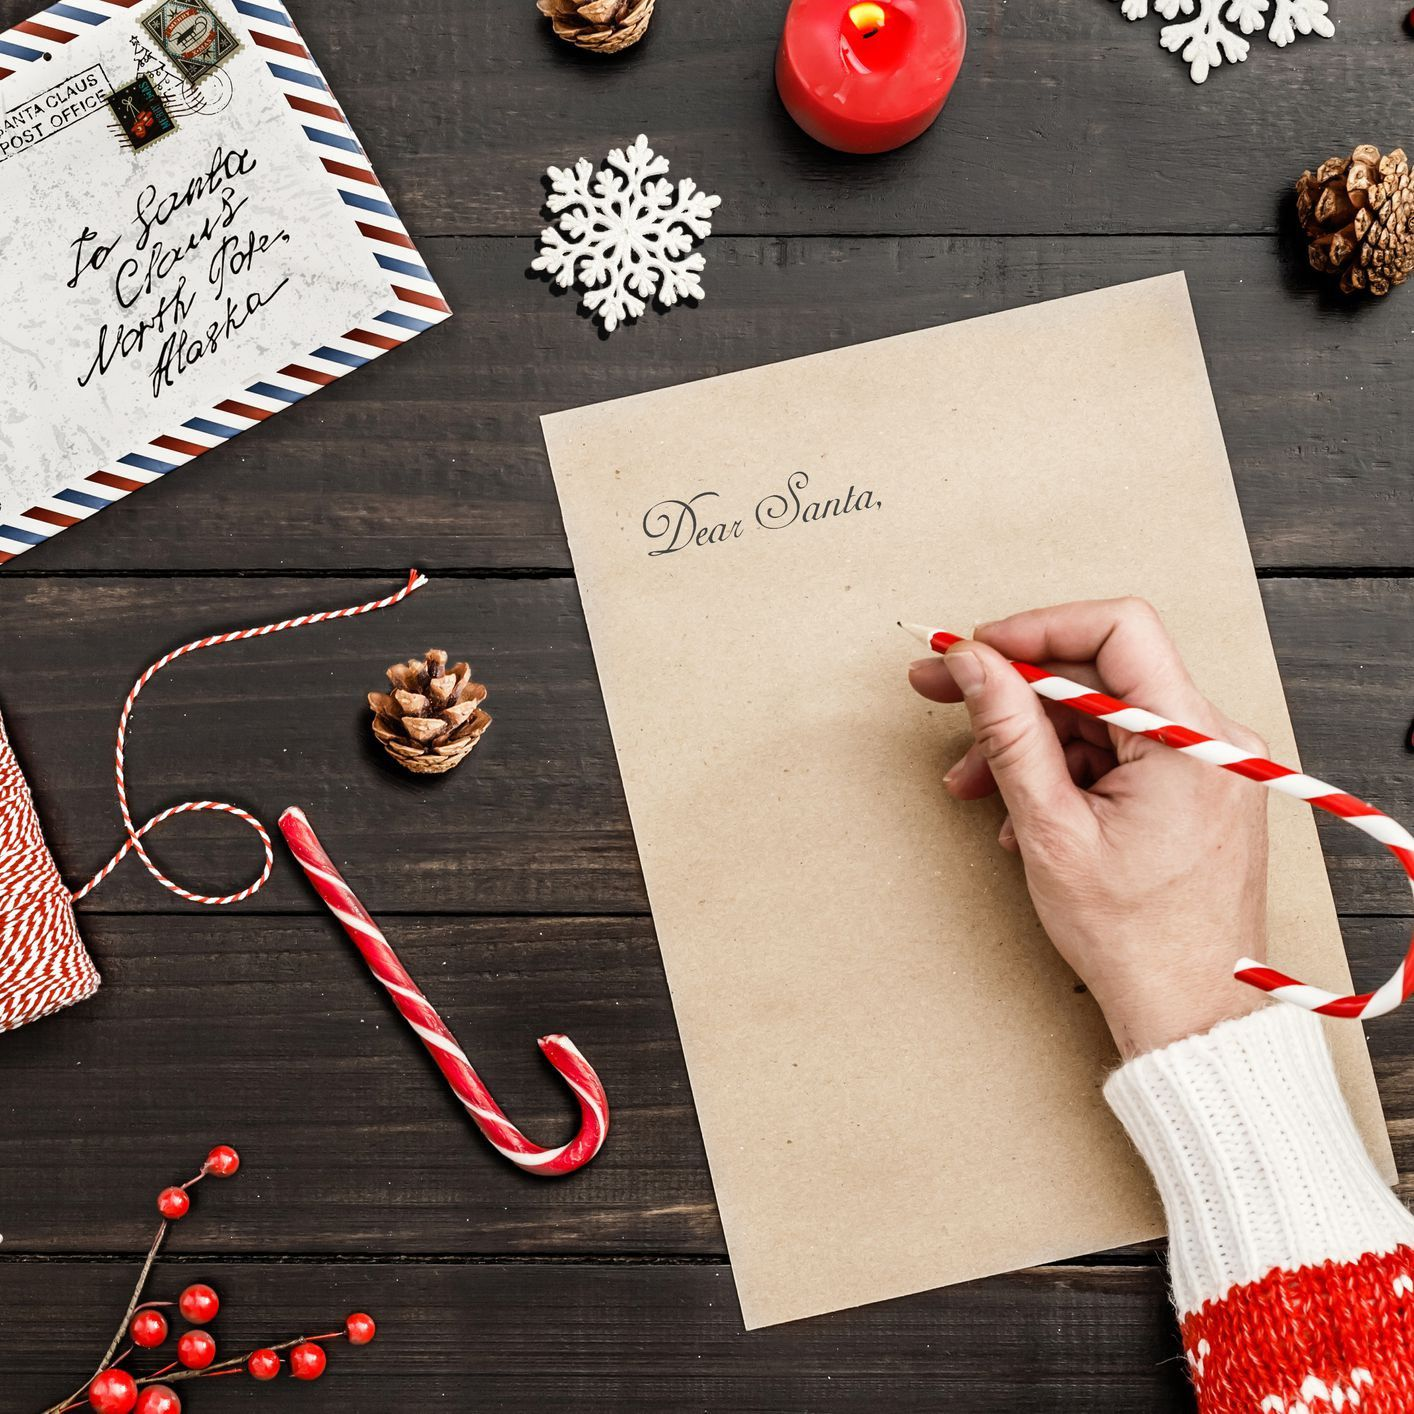 008 Wonderful Christma Stationery Template Word Free High Definition  Religiou For DownloadableFull